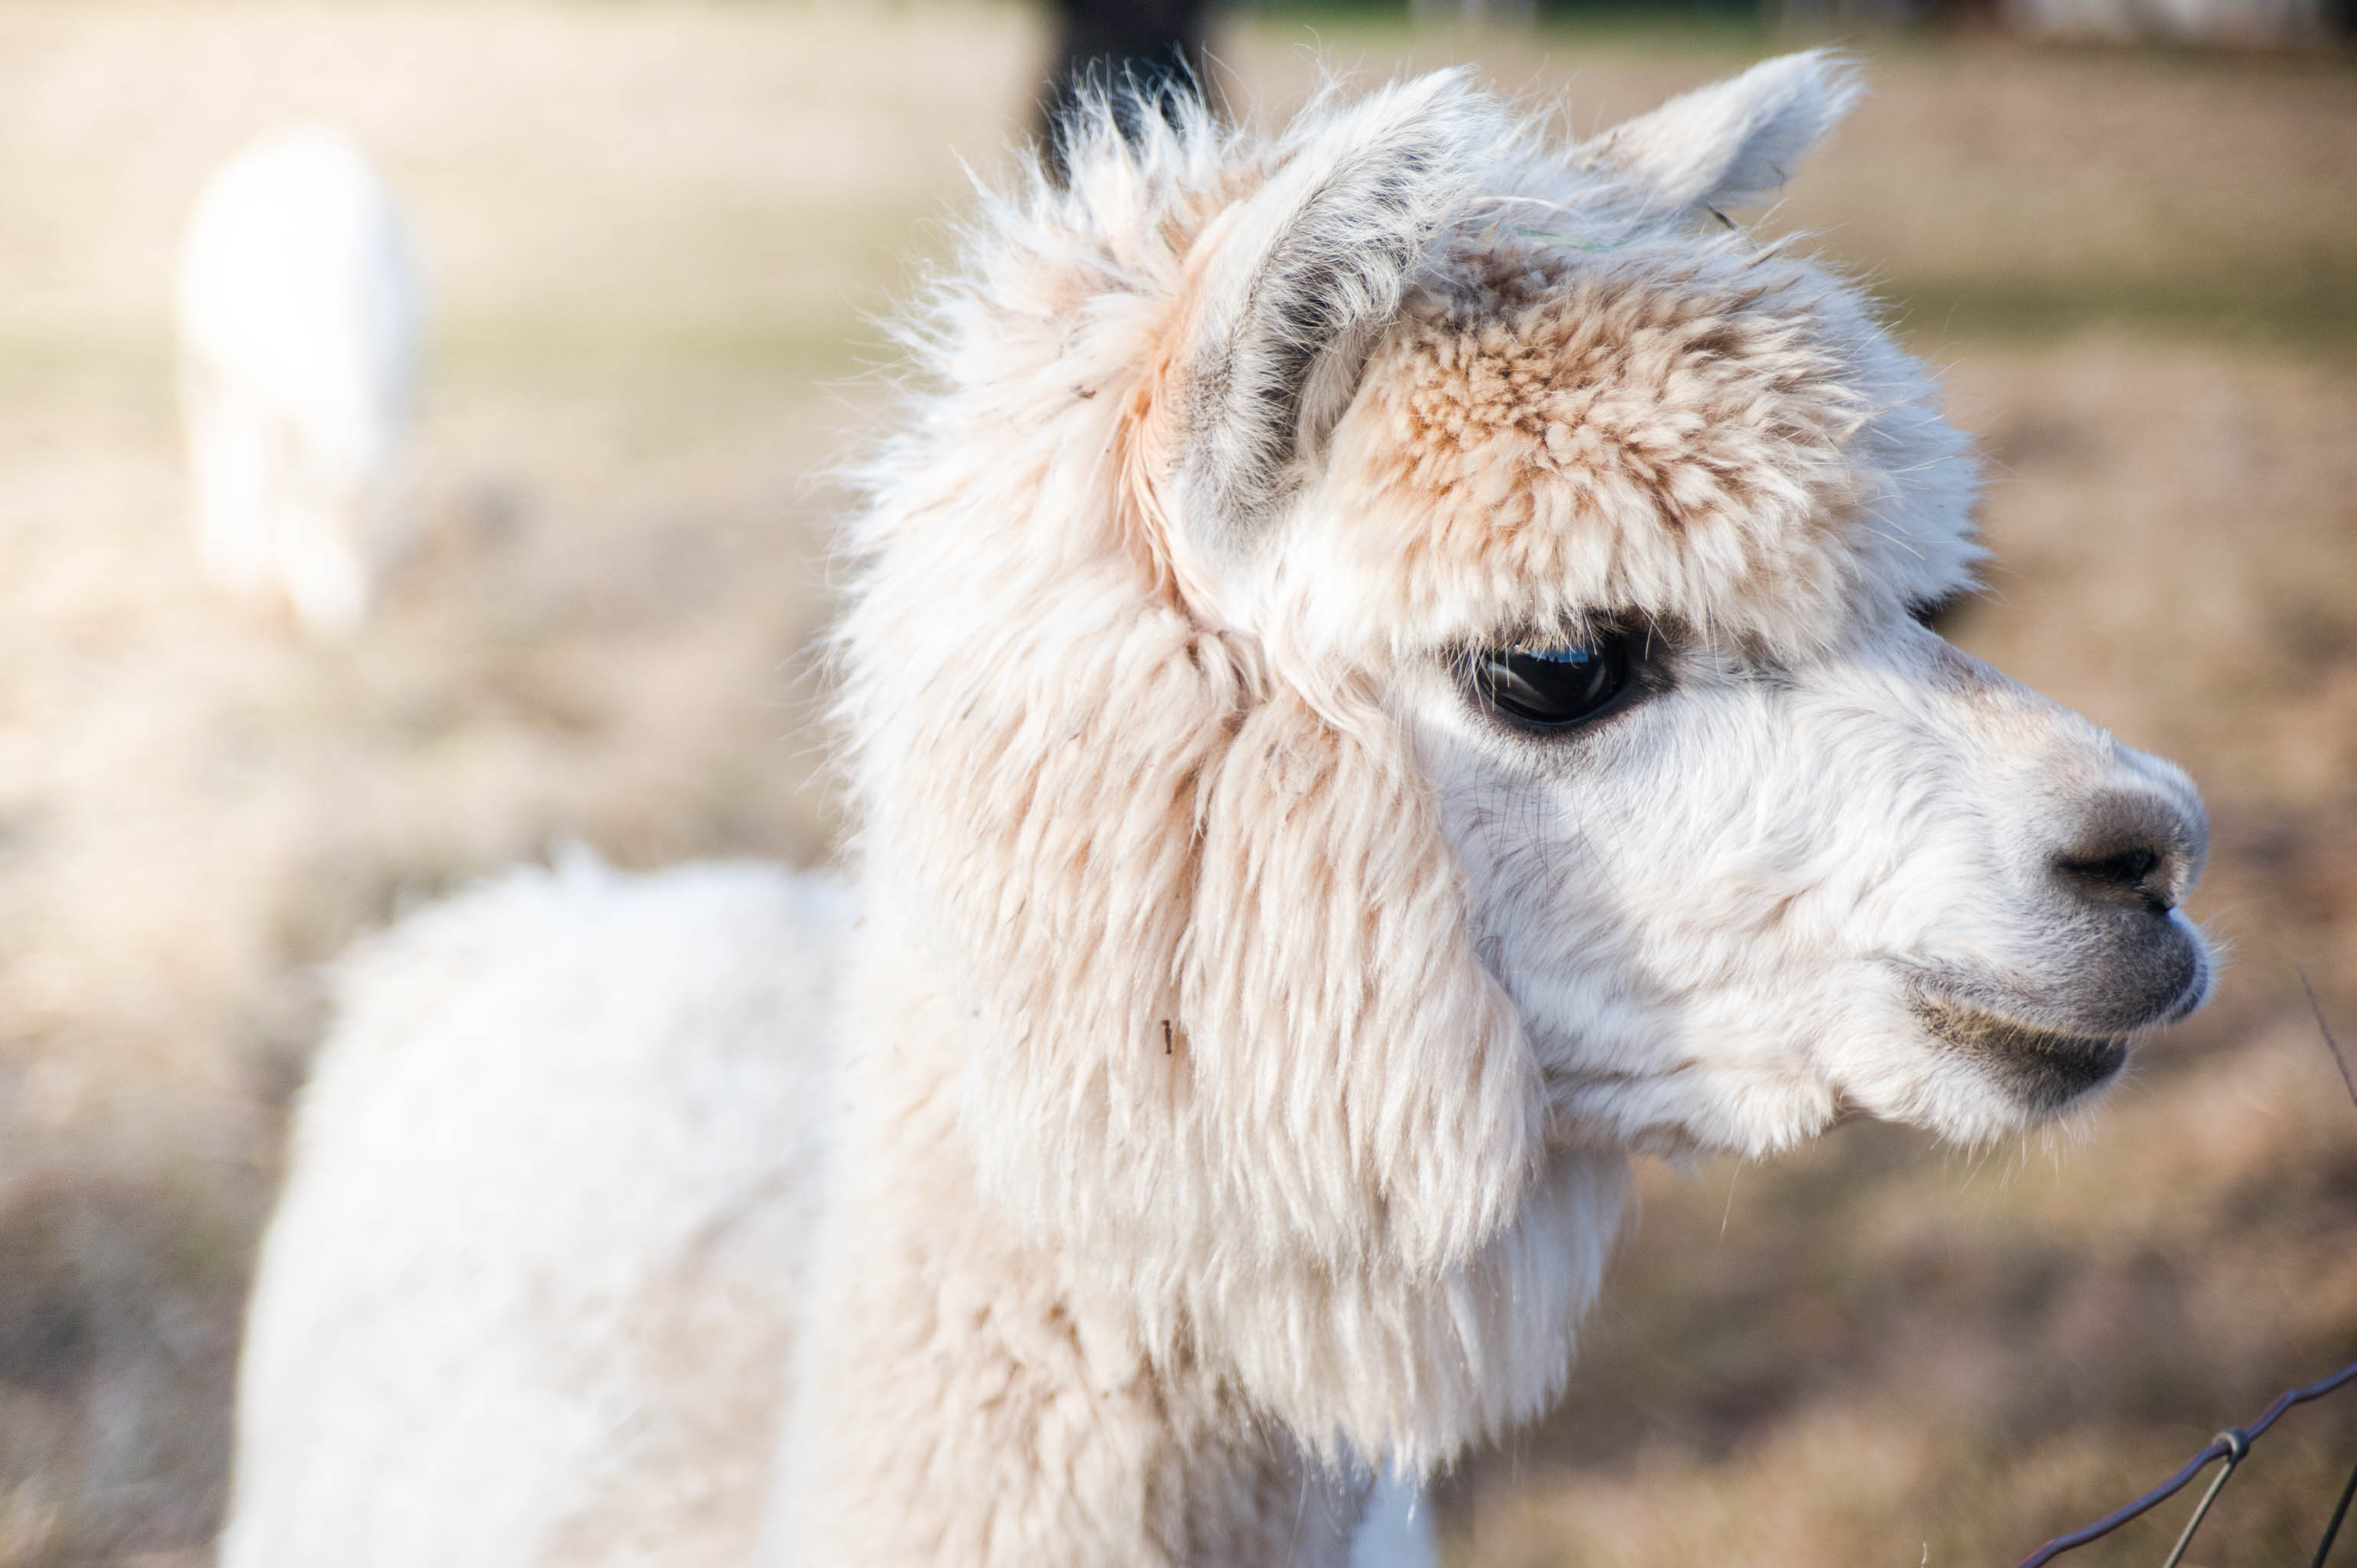 TCF_SFS_011115_Adorable_Alpacas-4